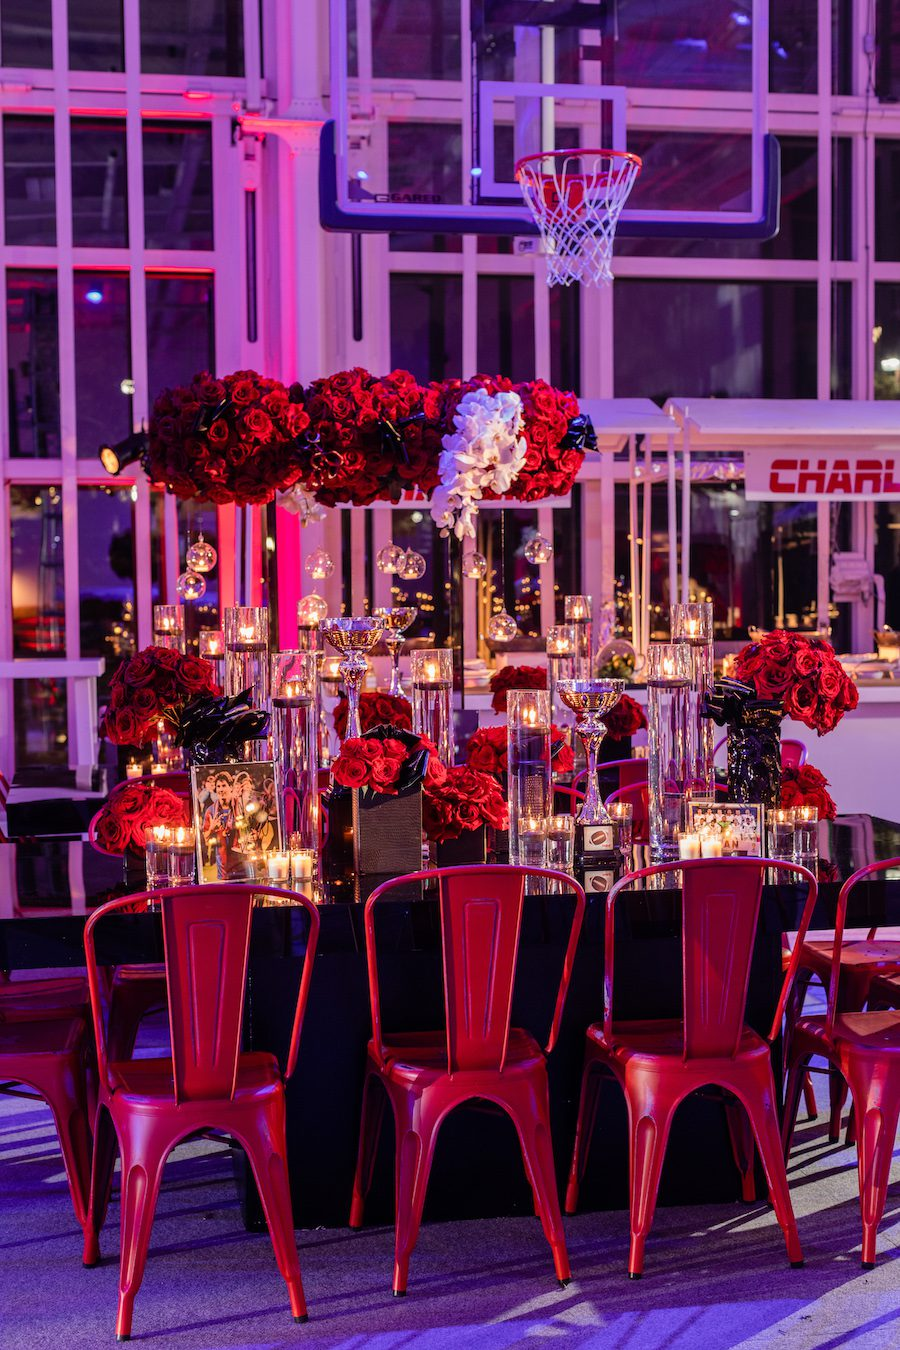 tabletop decor with large red bouquets at celebration party